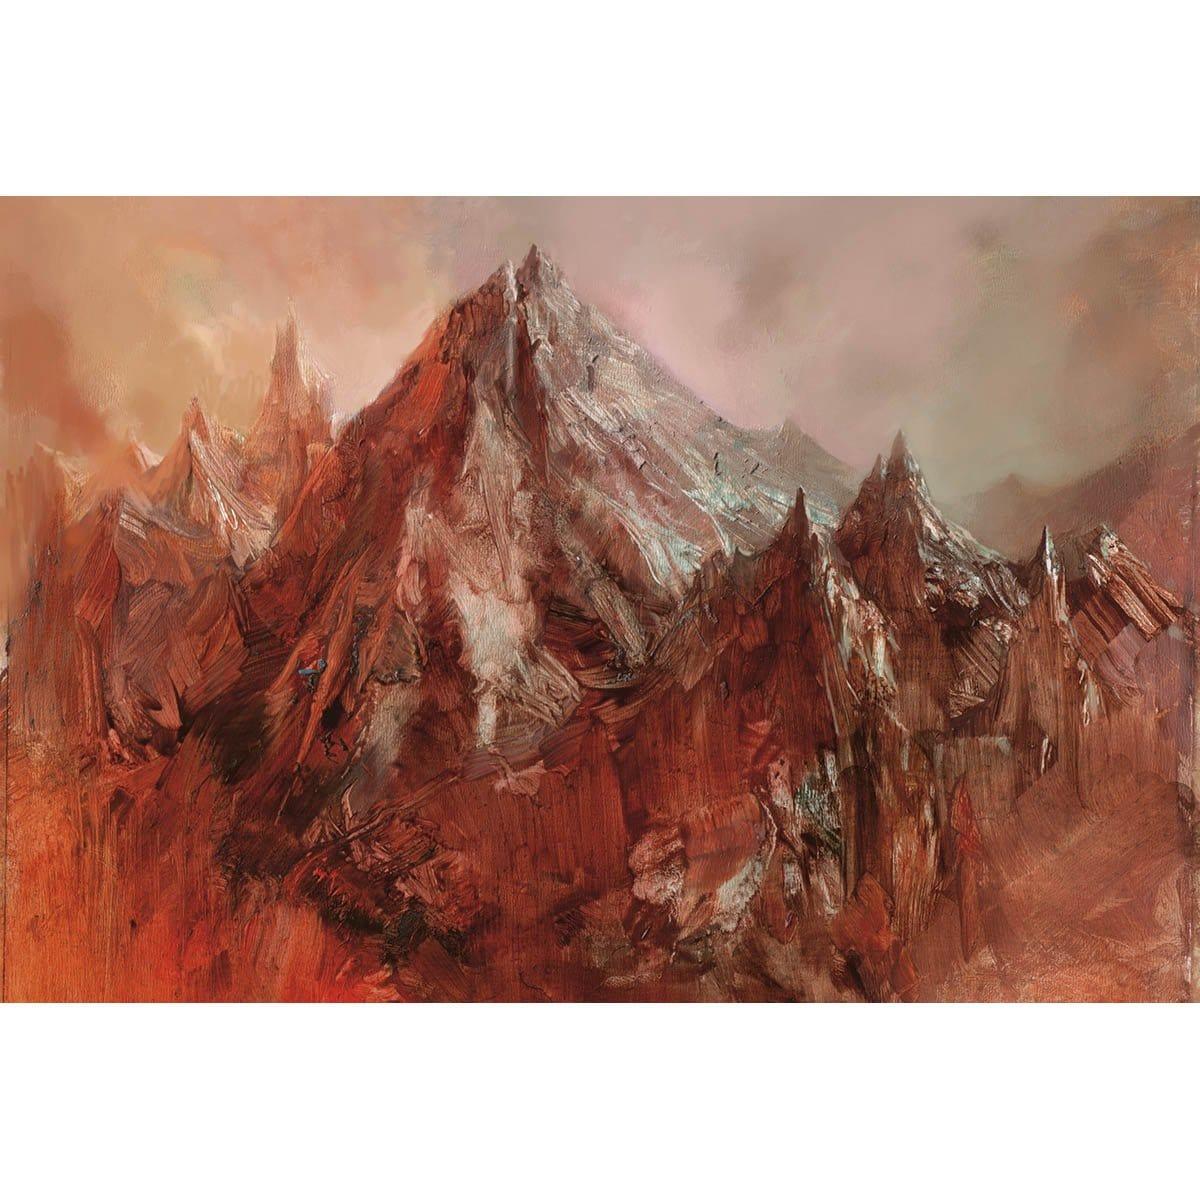 Mountain (Magic 2010) Print - Print - Original Magic Art - Accessories for Magic the Gathering and other card games